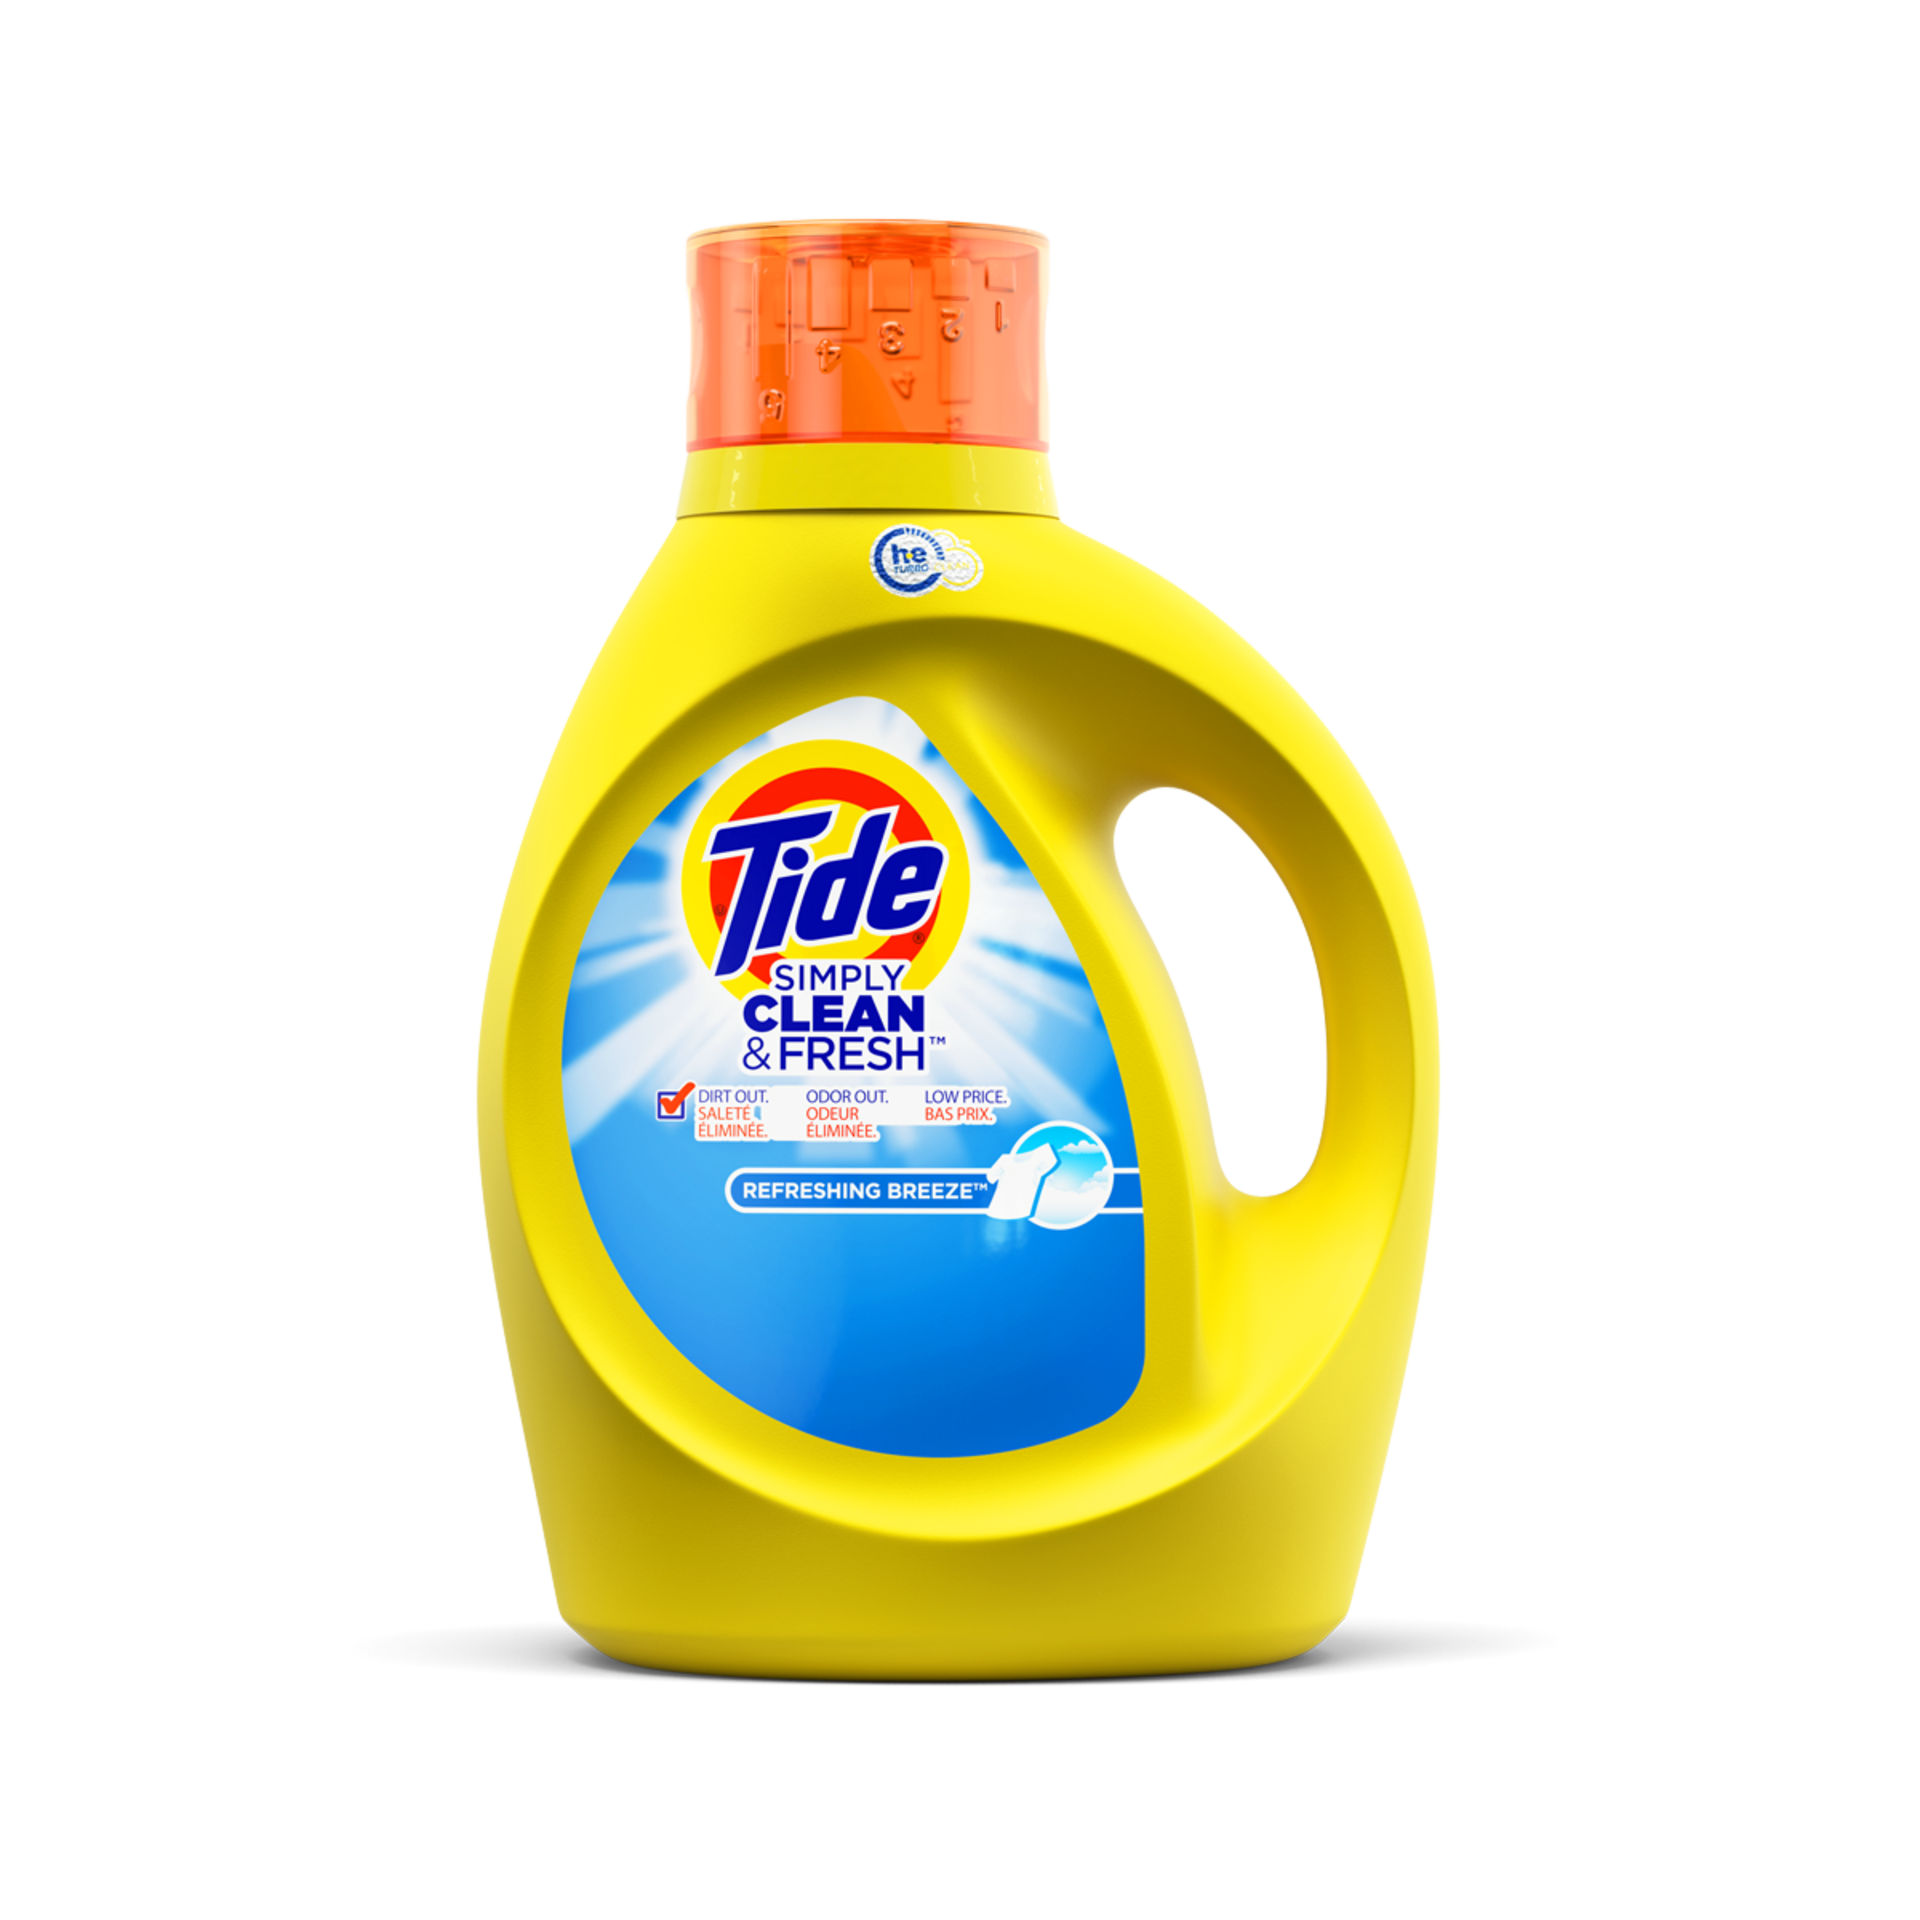 Tide Simply Clean and Fresh Liquid Laundry Detergent